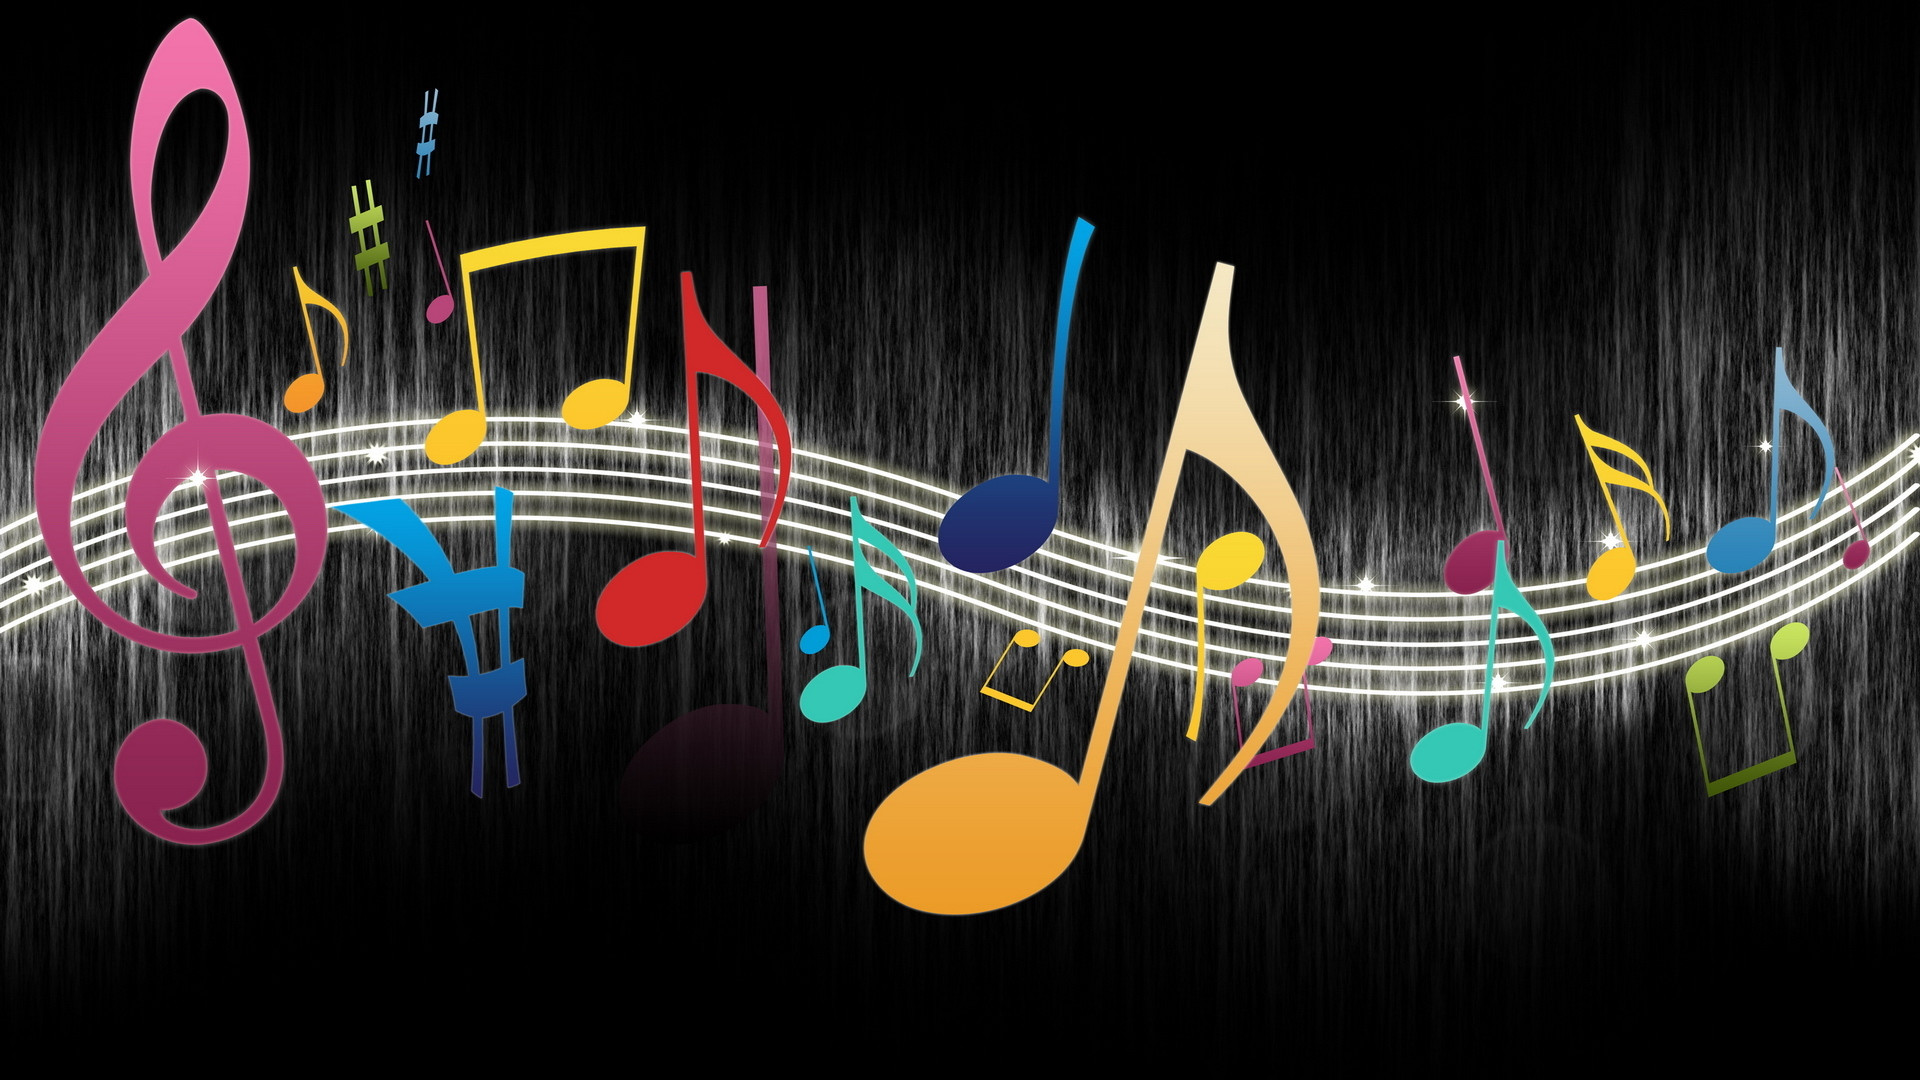 Music Graffiti Wallpapers Wallpapertag: Cool Music Backgrounds (57+ Images